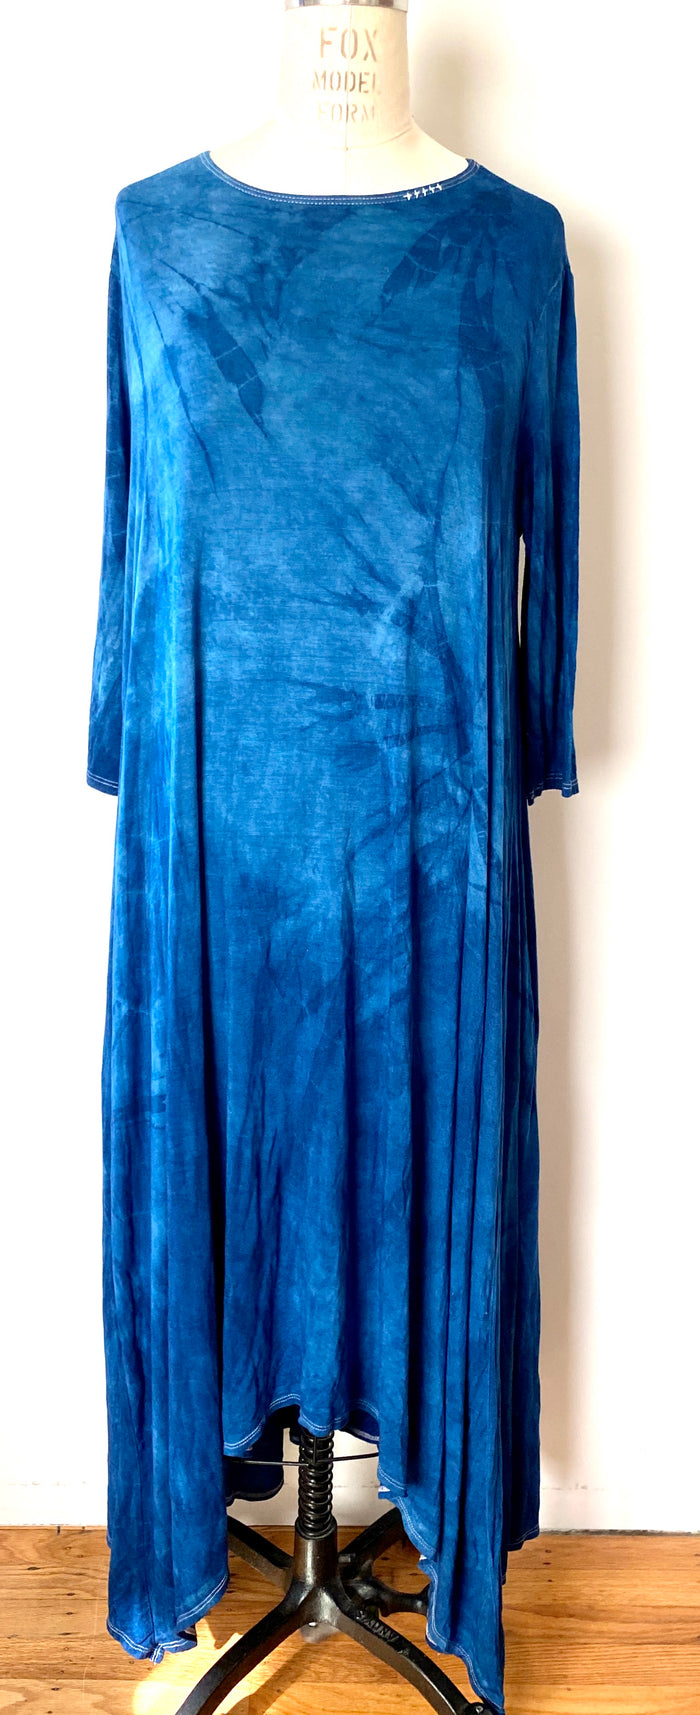 Dress // Indigo Hankerchief dress // Large Only 1 left